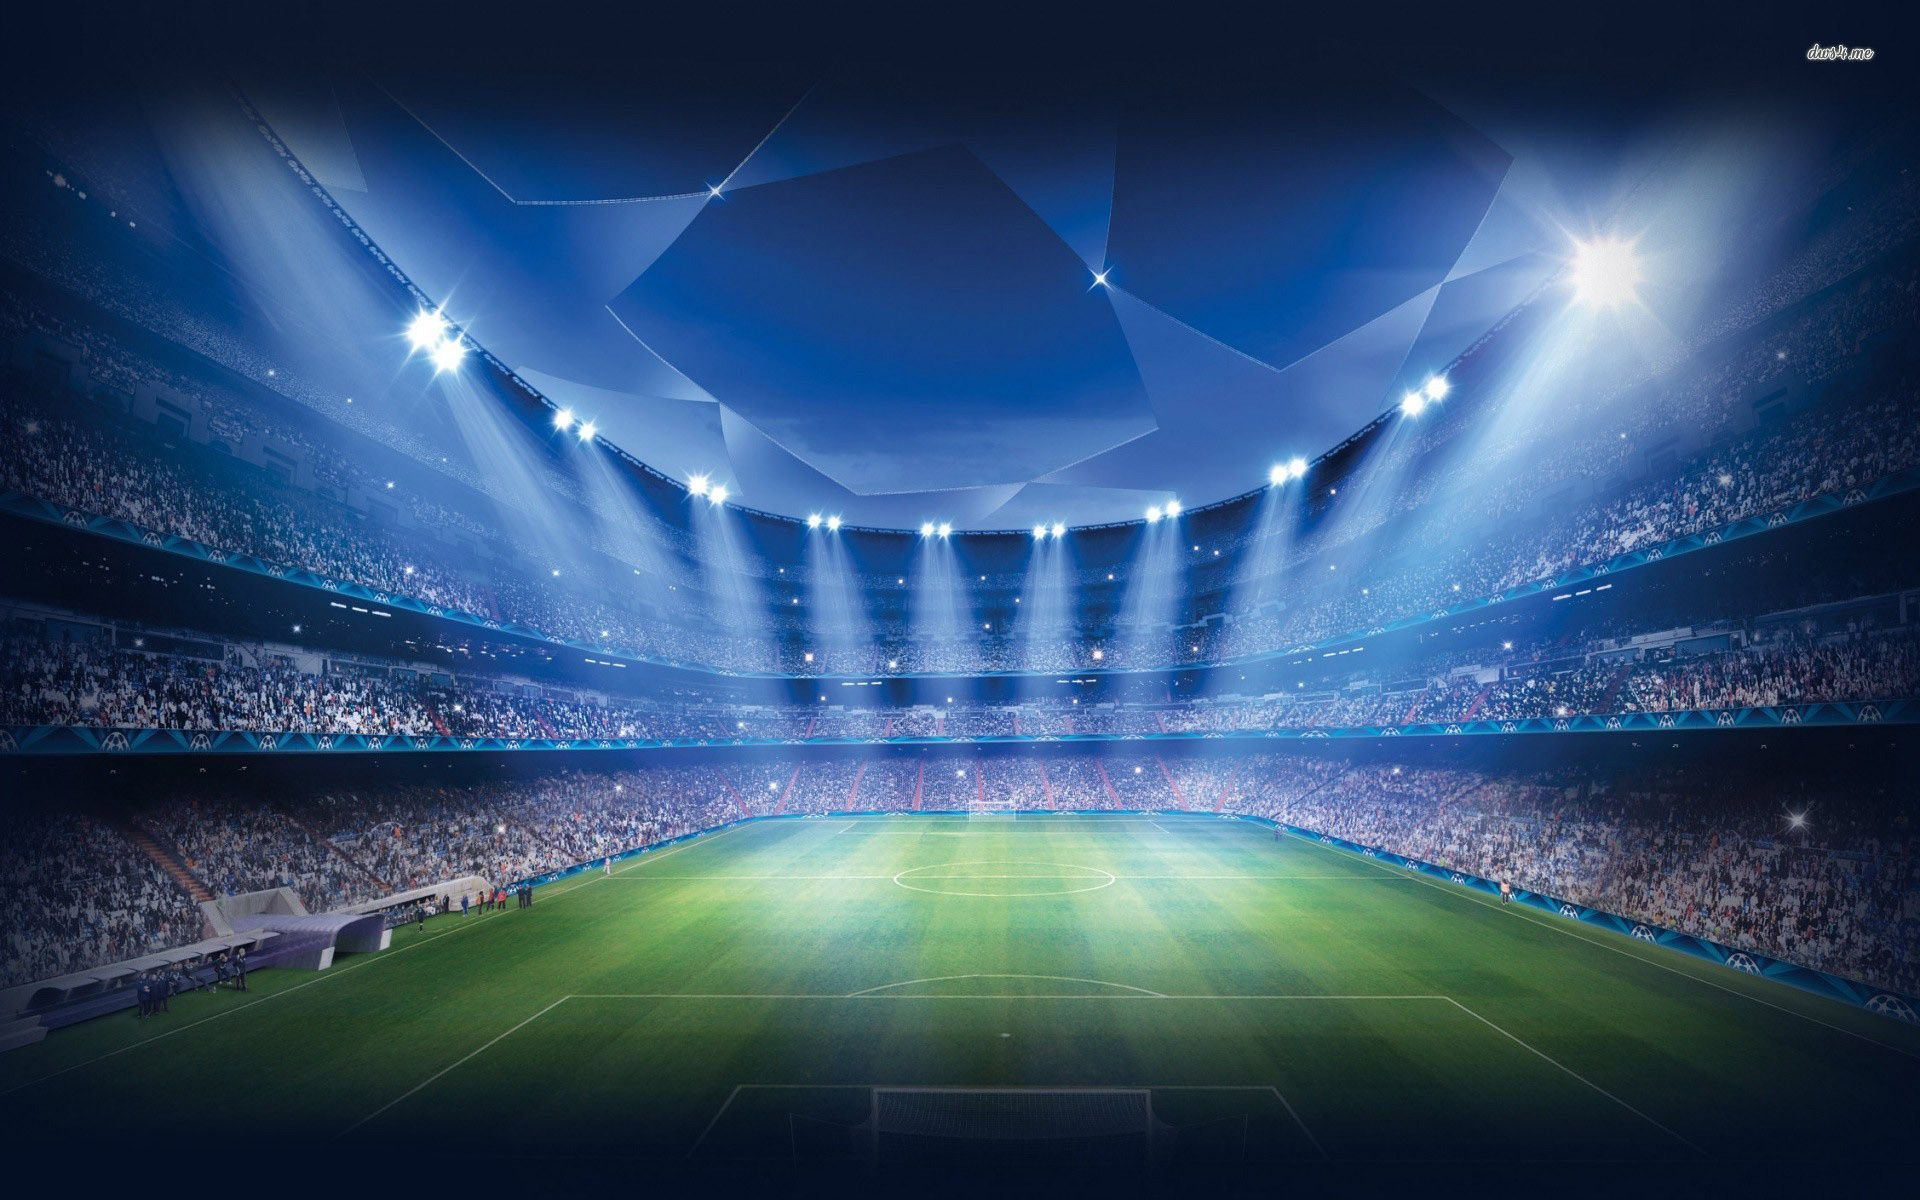 Soccer Stadium Wallpaper For Windows Kxt Stadium Wallpaper Football Wallpaper Sports Wallpapers